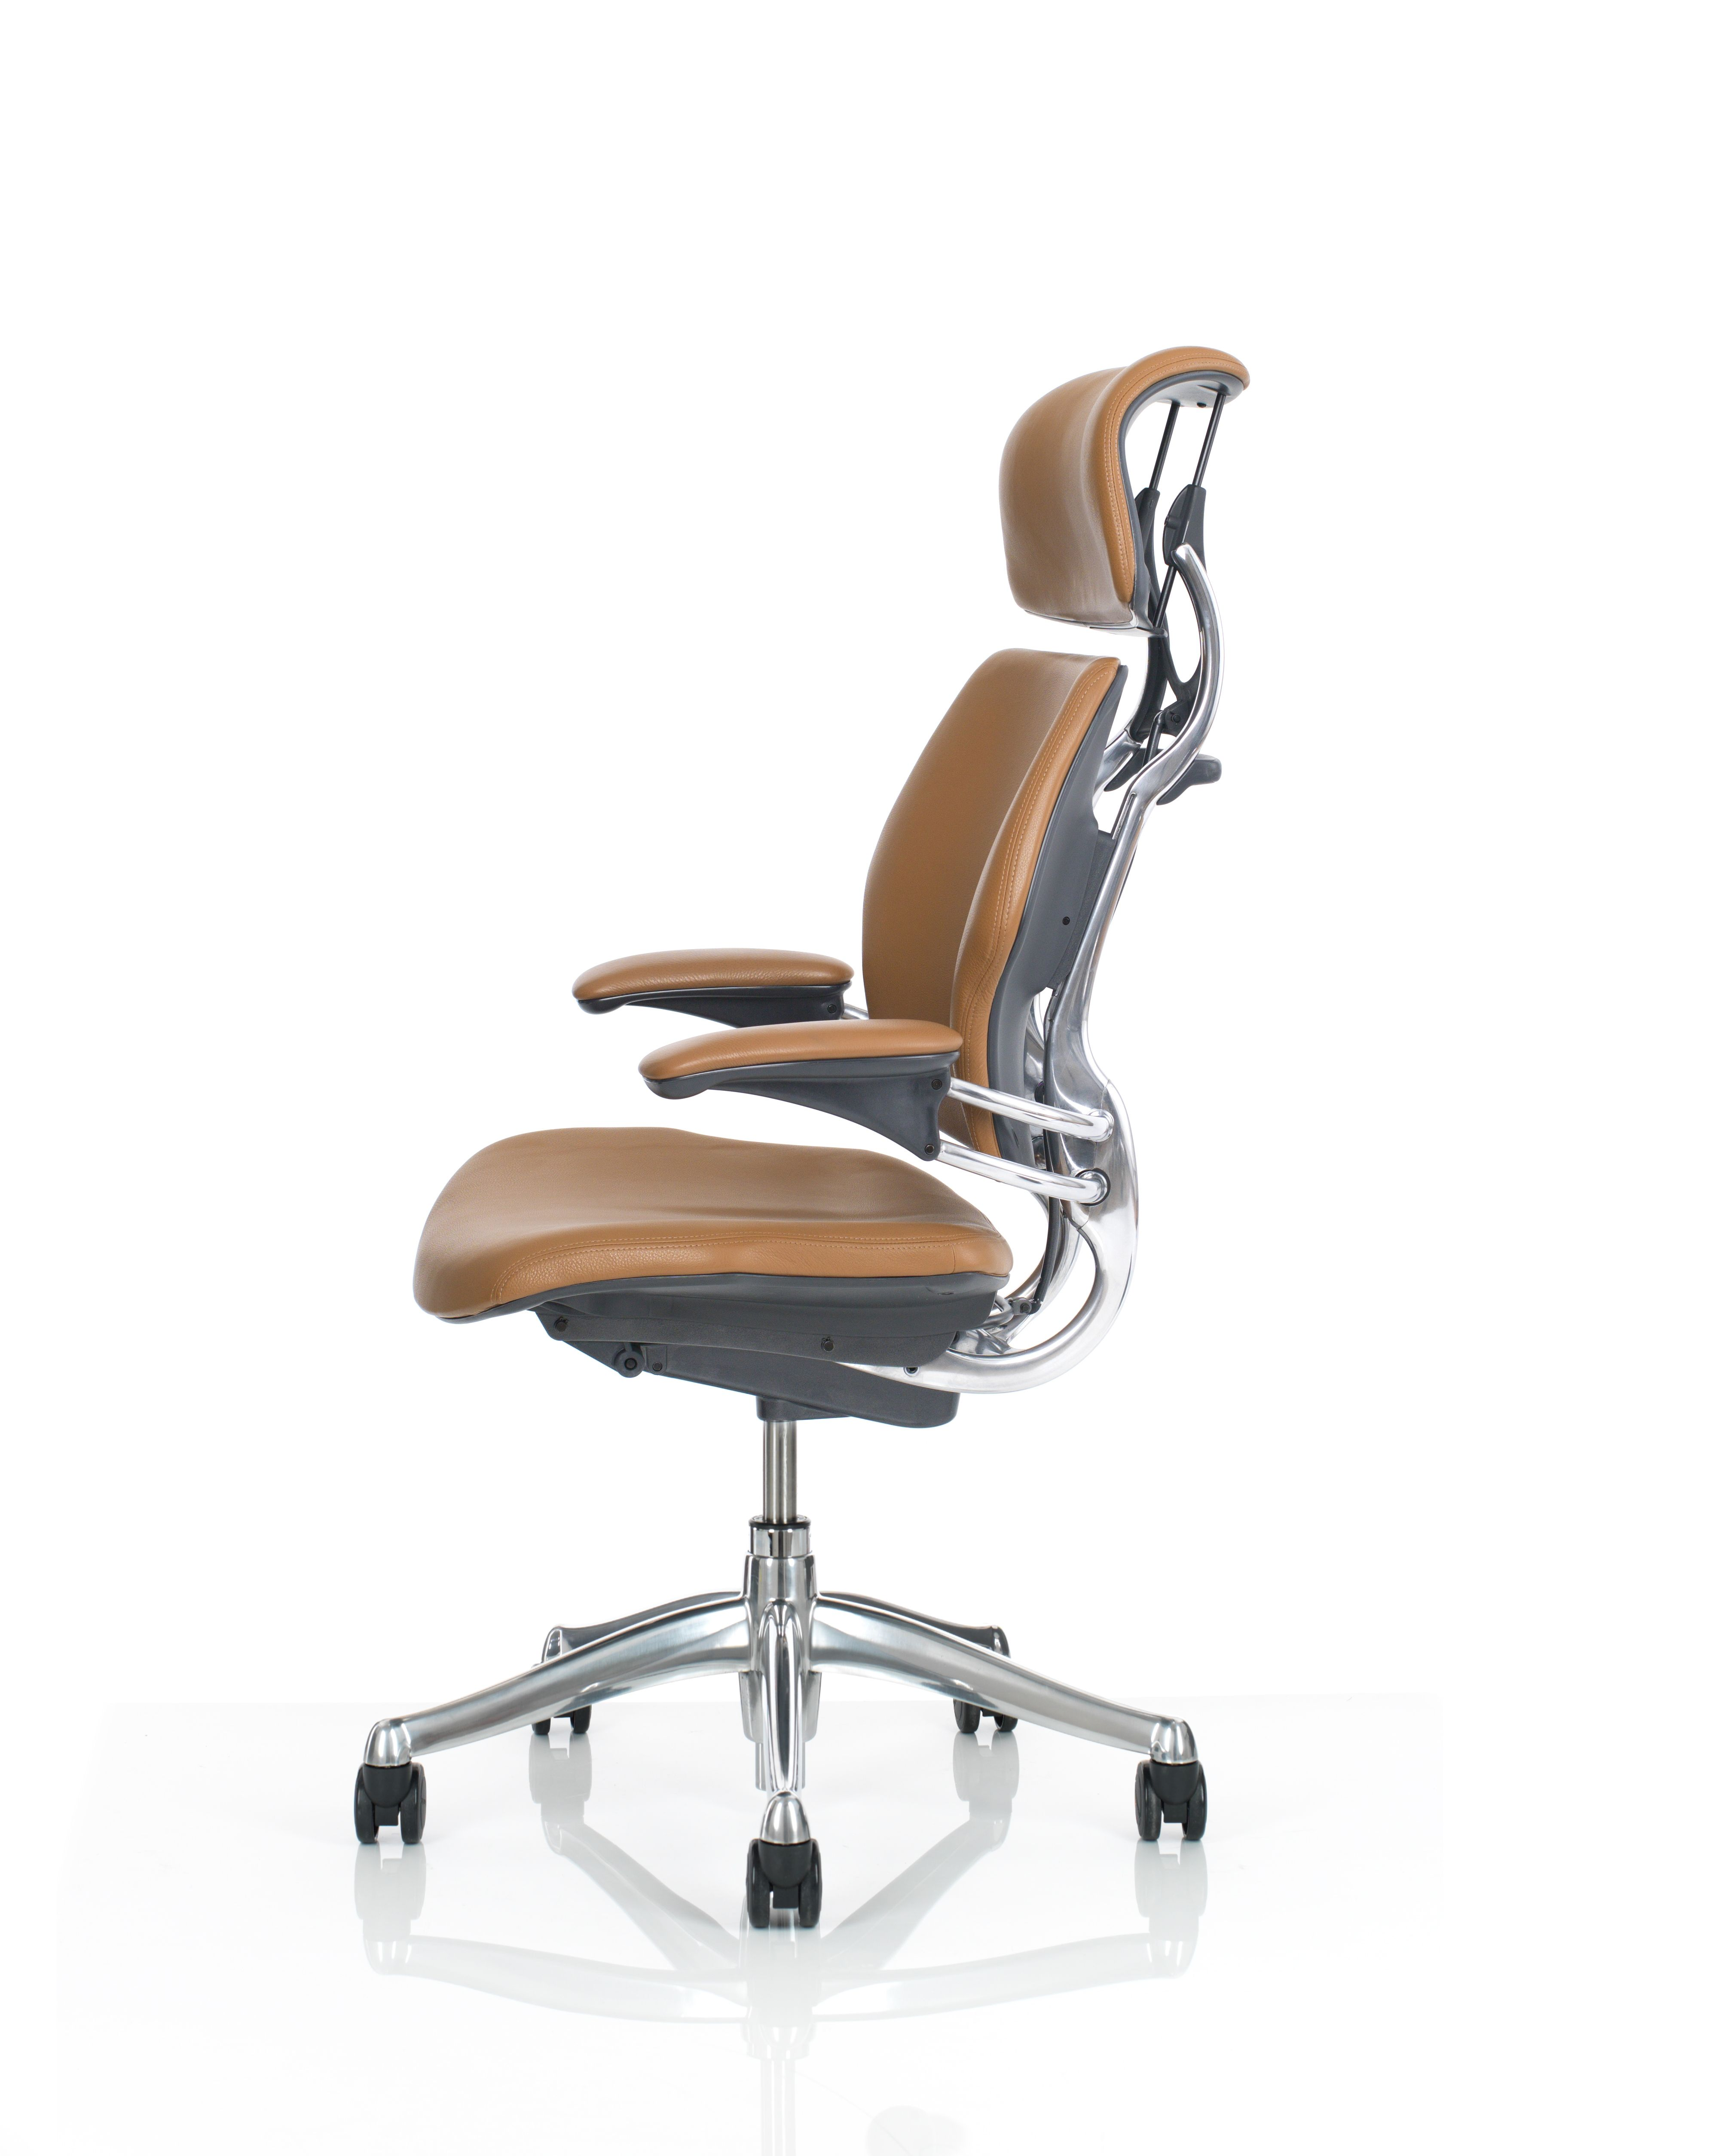 Ergonomic Chair Brisbane Extra Large Papasan Office Haworth Heavy Duty Mesh Back